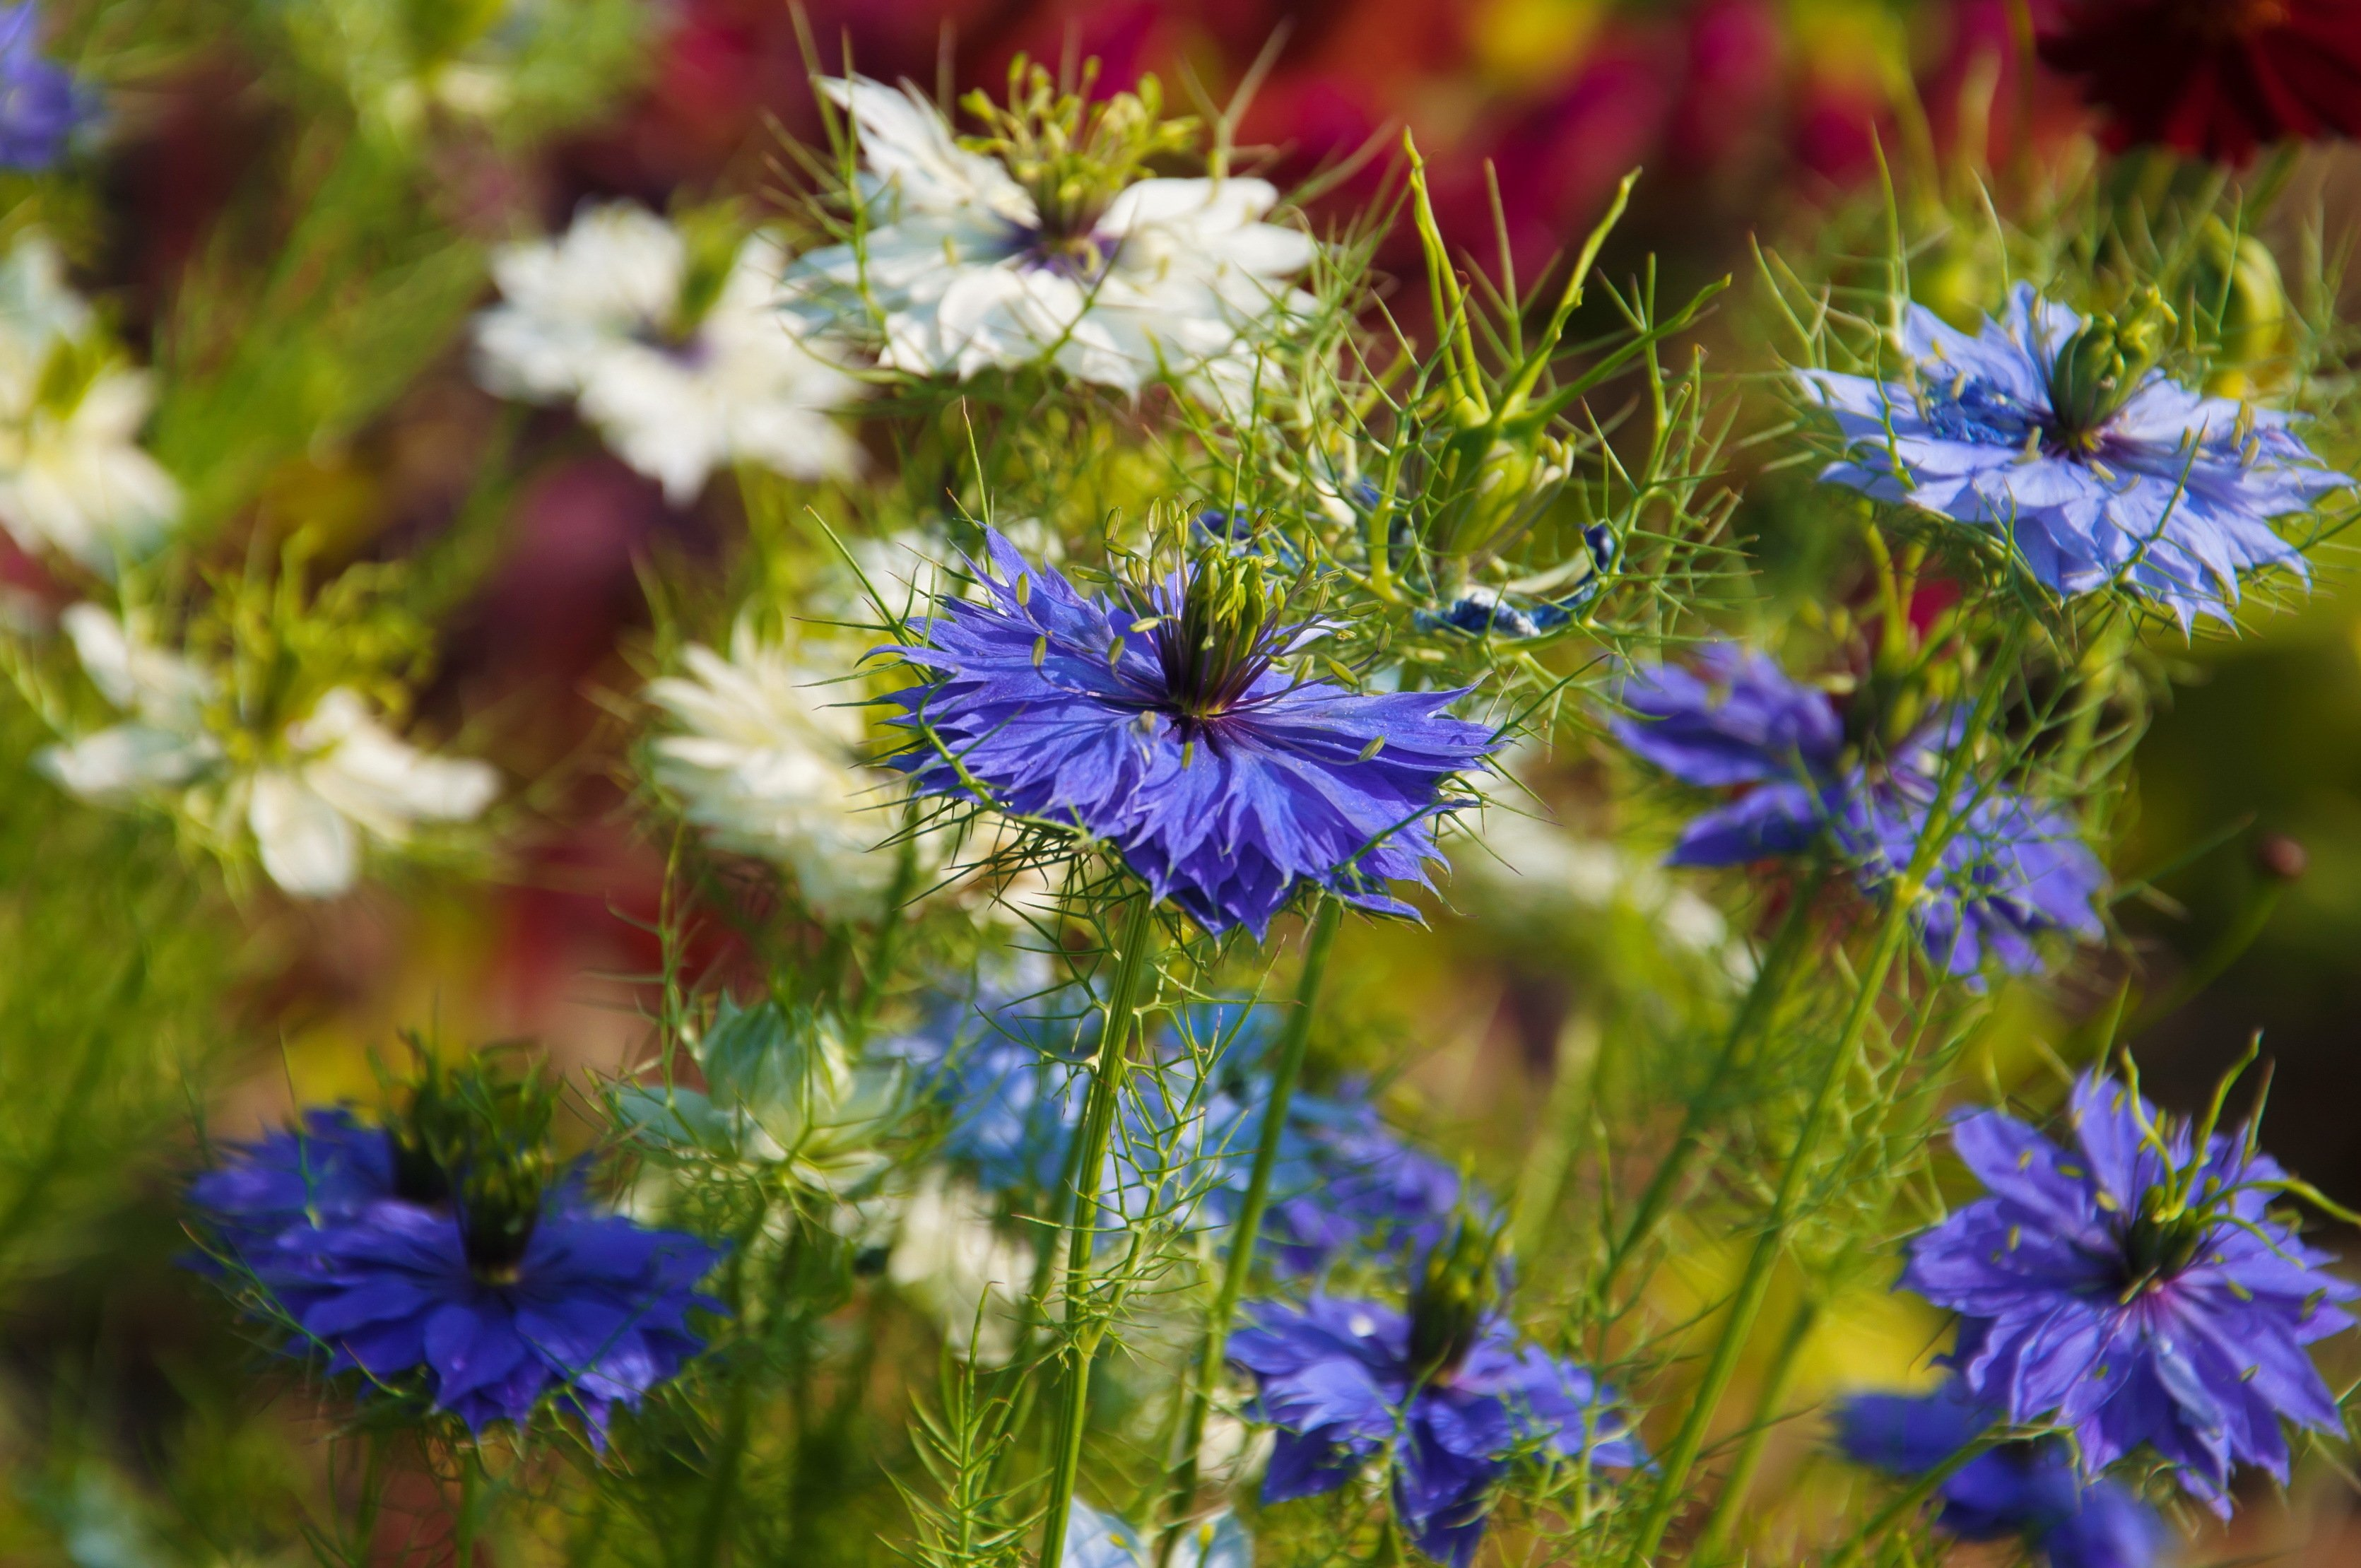 13 Love-in-a-mist (Nigella damascene)